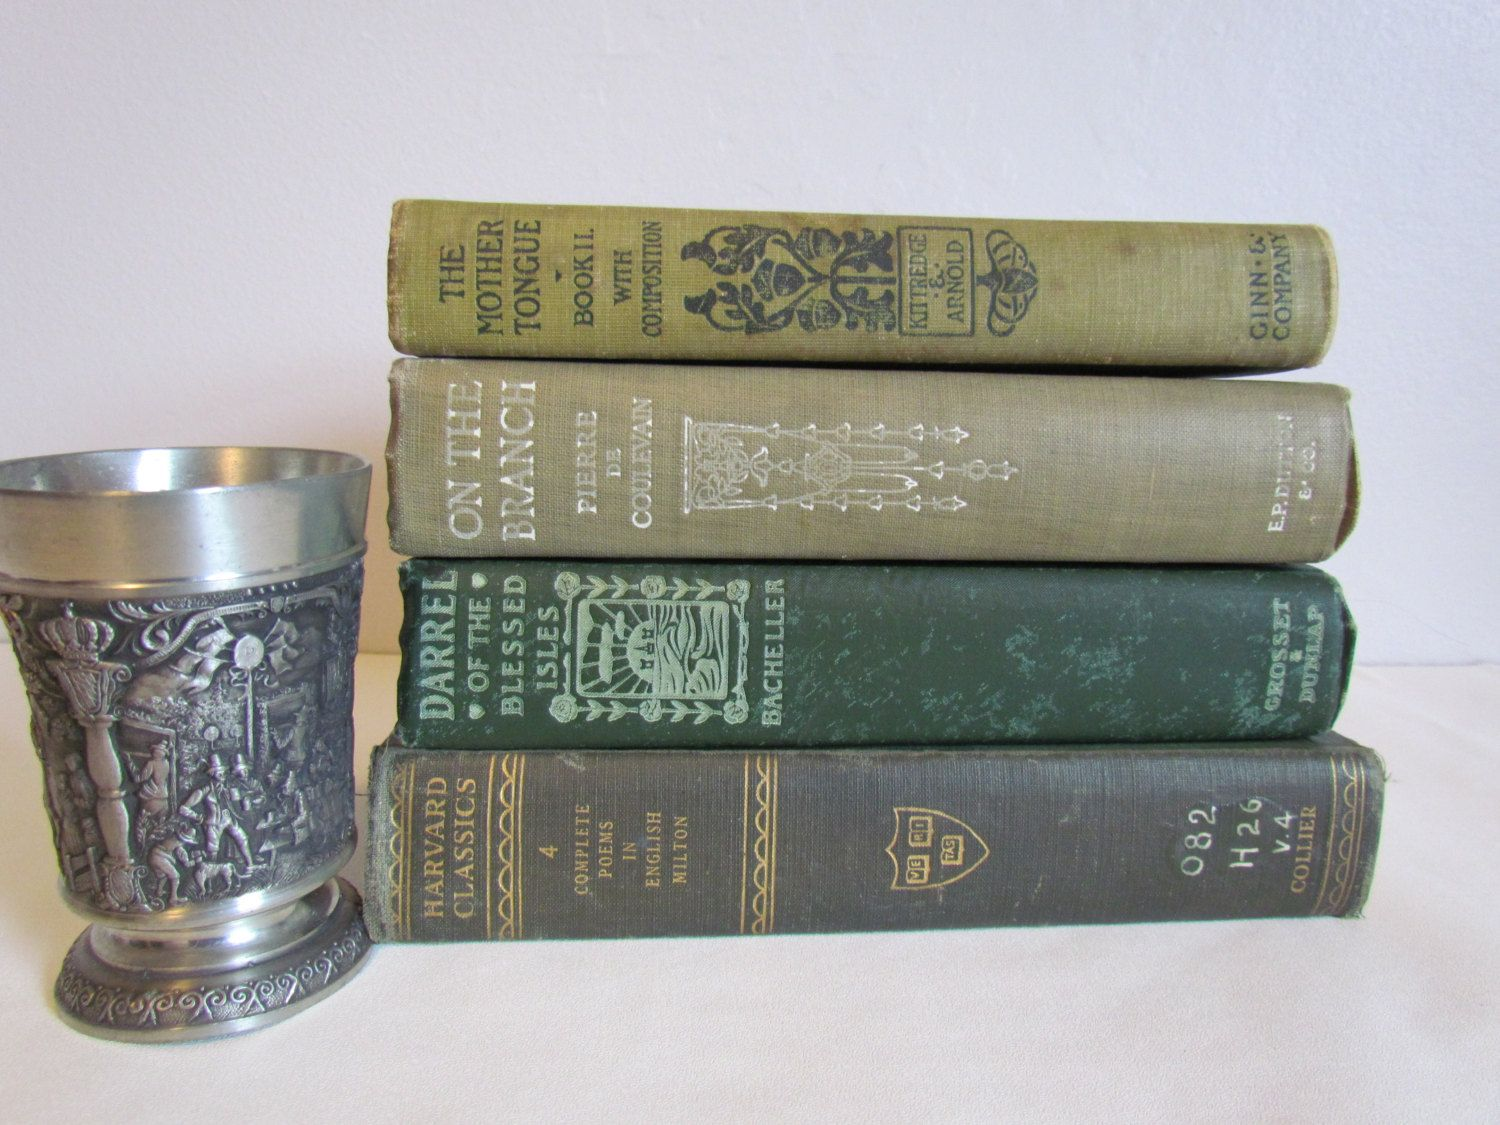 Green Vintage Old Book Set Decorative Stacked Books Antique Stacks Photography Props Stack Of Wedding Coffee Table Decor By Kozykitchy On Etsy